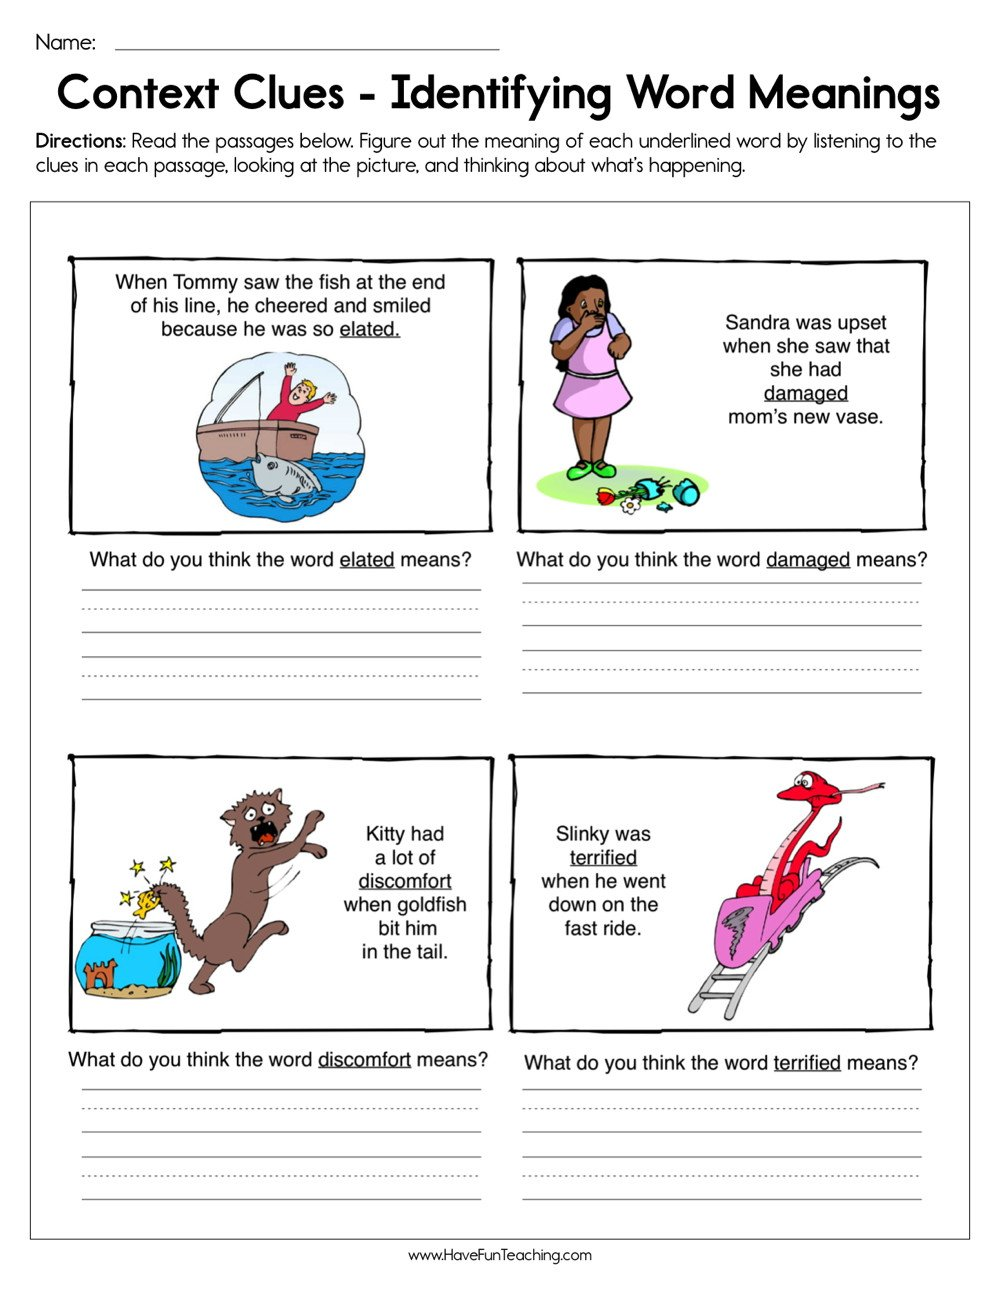 Reading In Context Worksheets Context Clues Identifying Word Meaning Worksheet